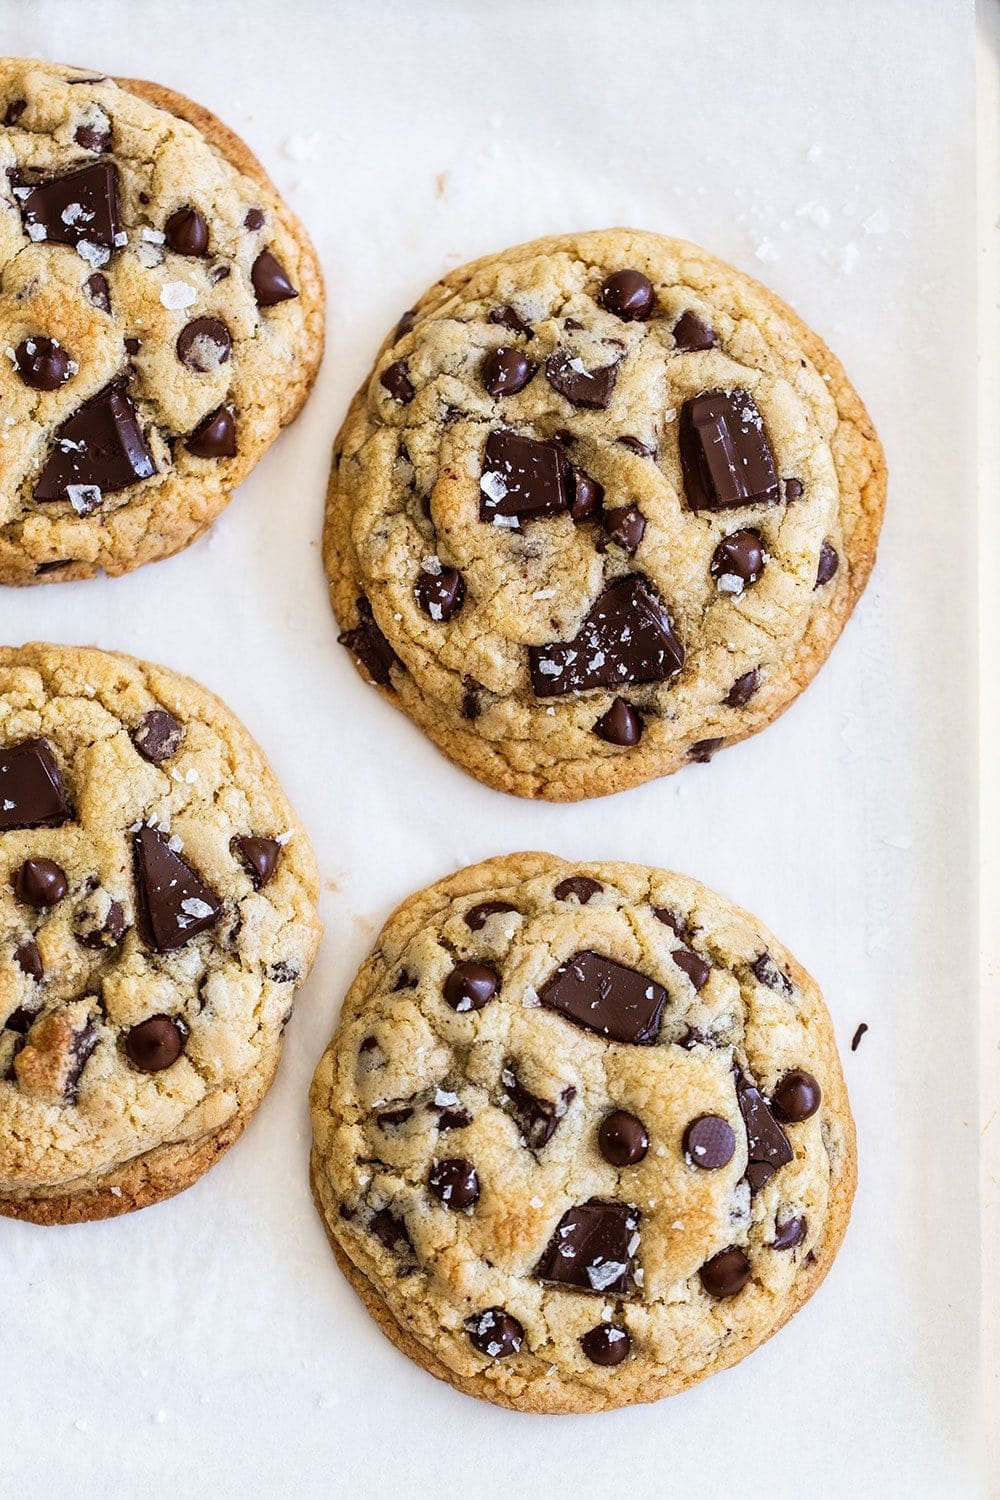 Four giant chocolate chip cookies